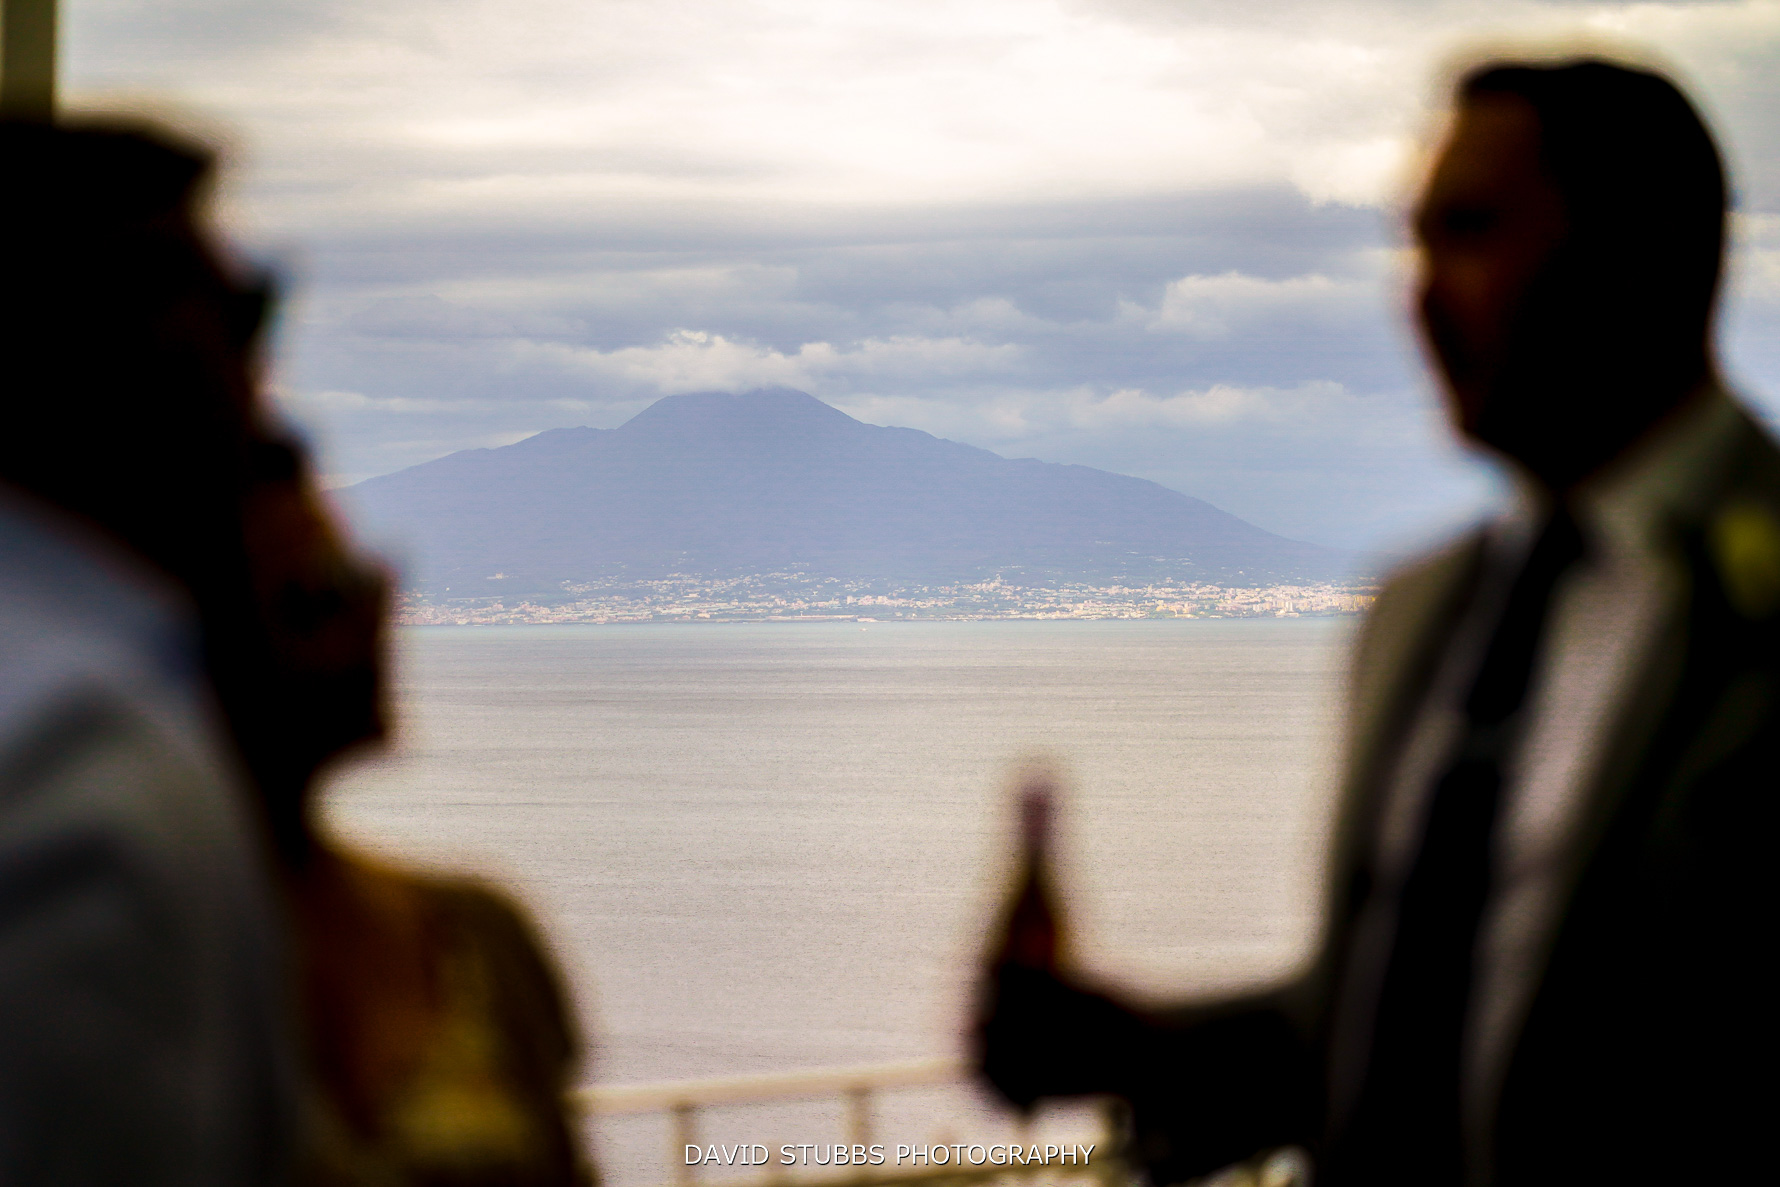 mt vesuvius in the background of wedding photo